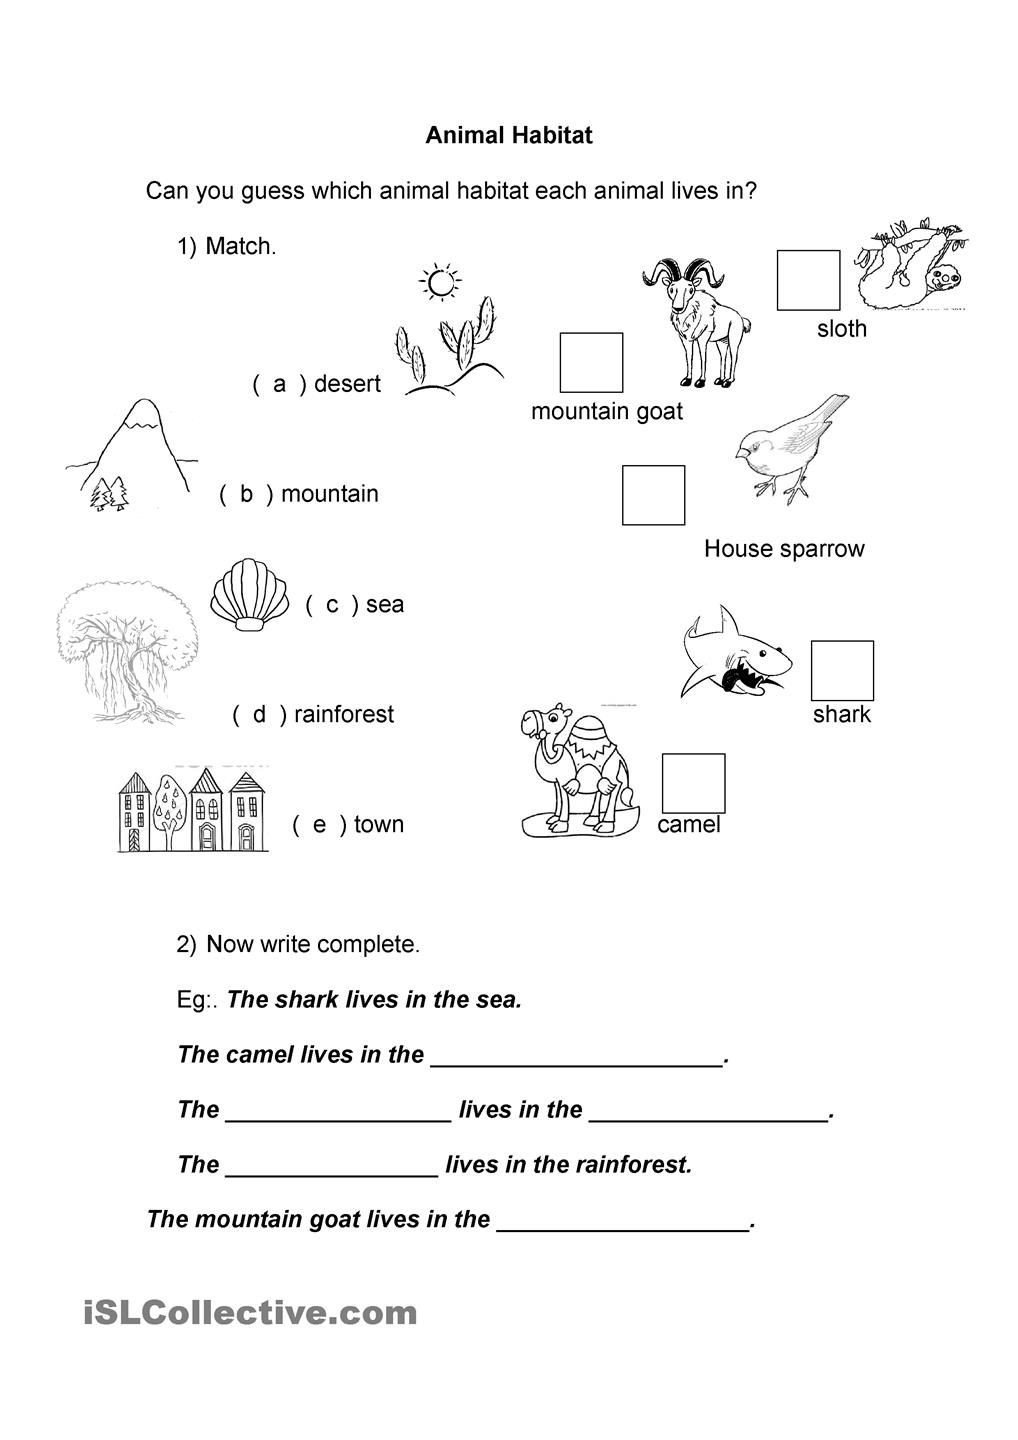 Animal Habitat Worksheets for Kindergarten Animal Habitat